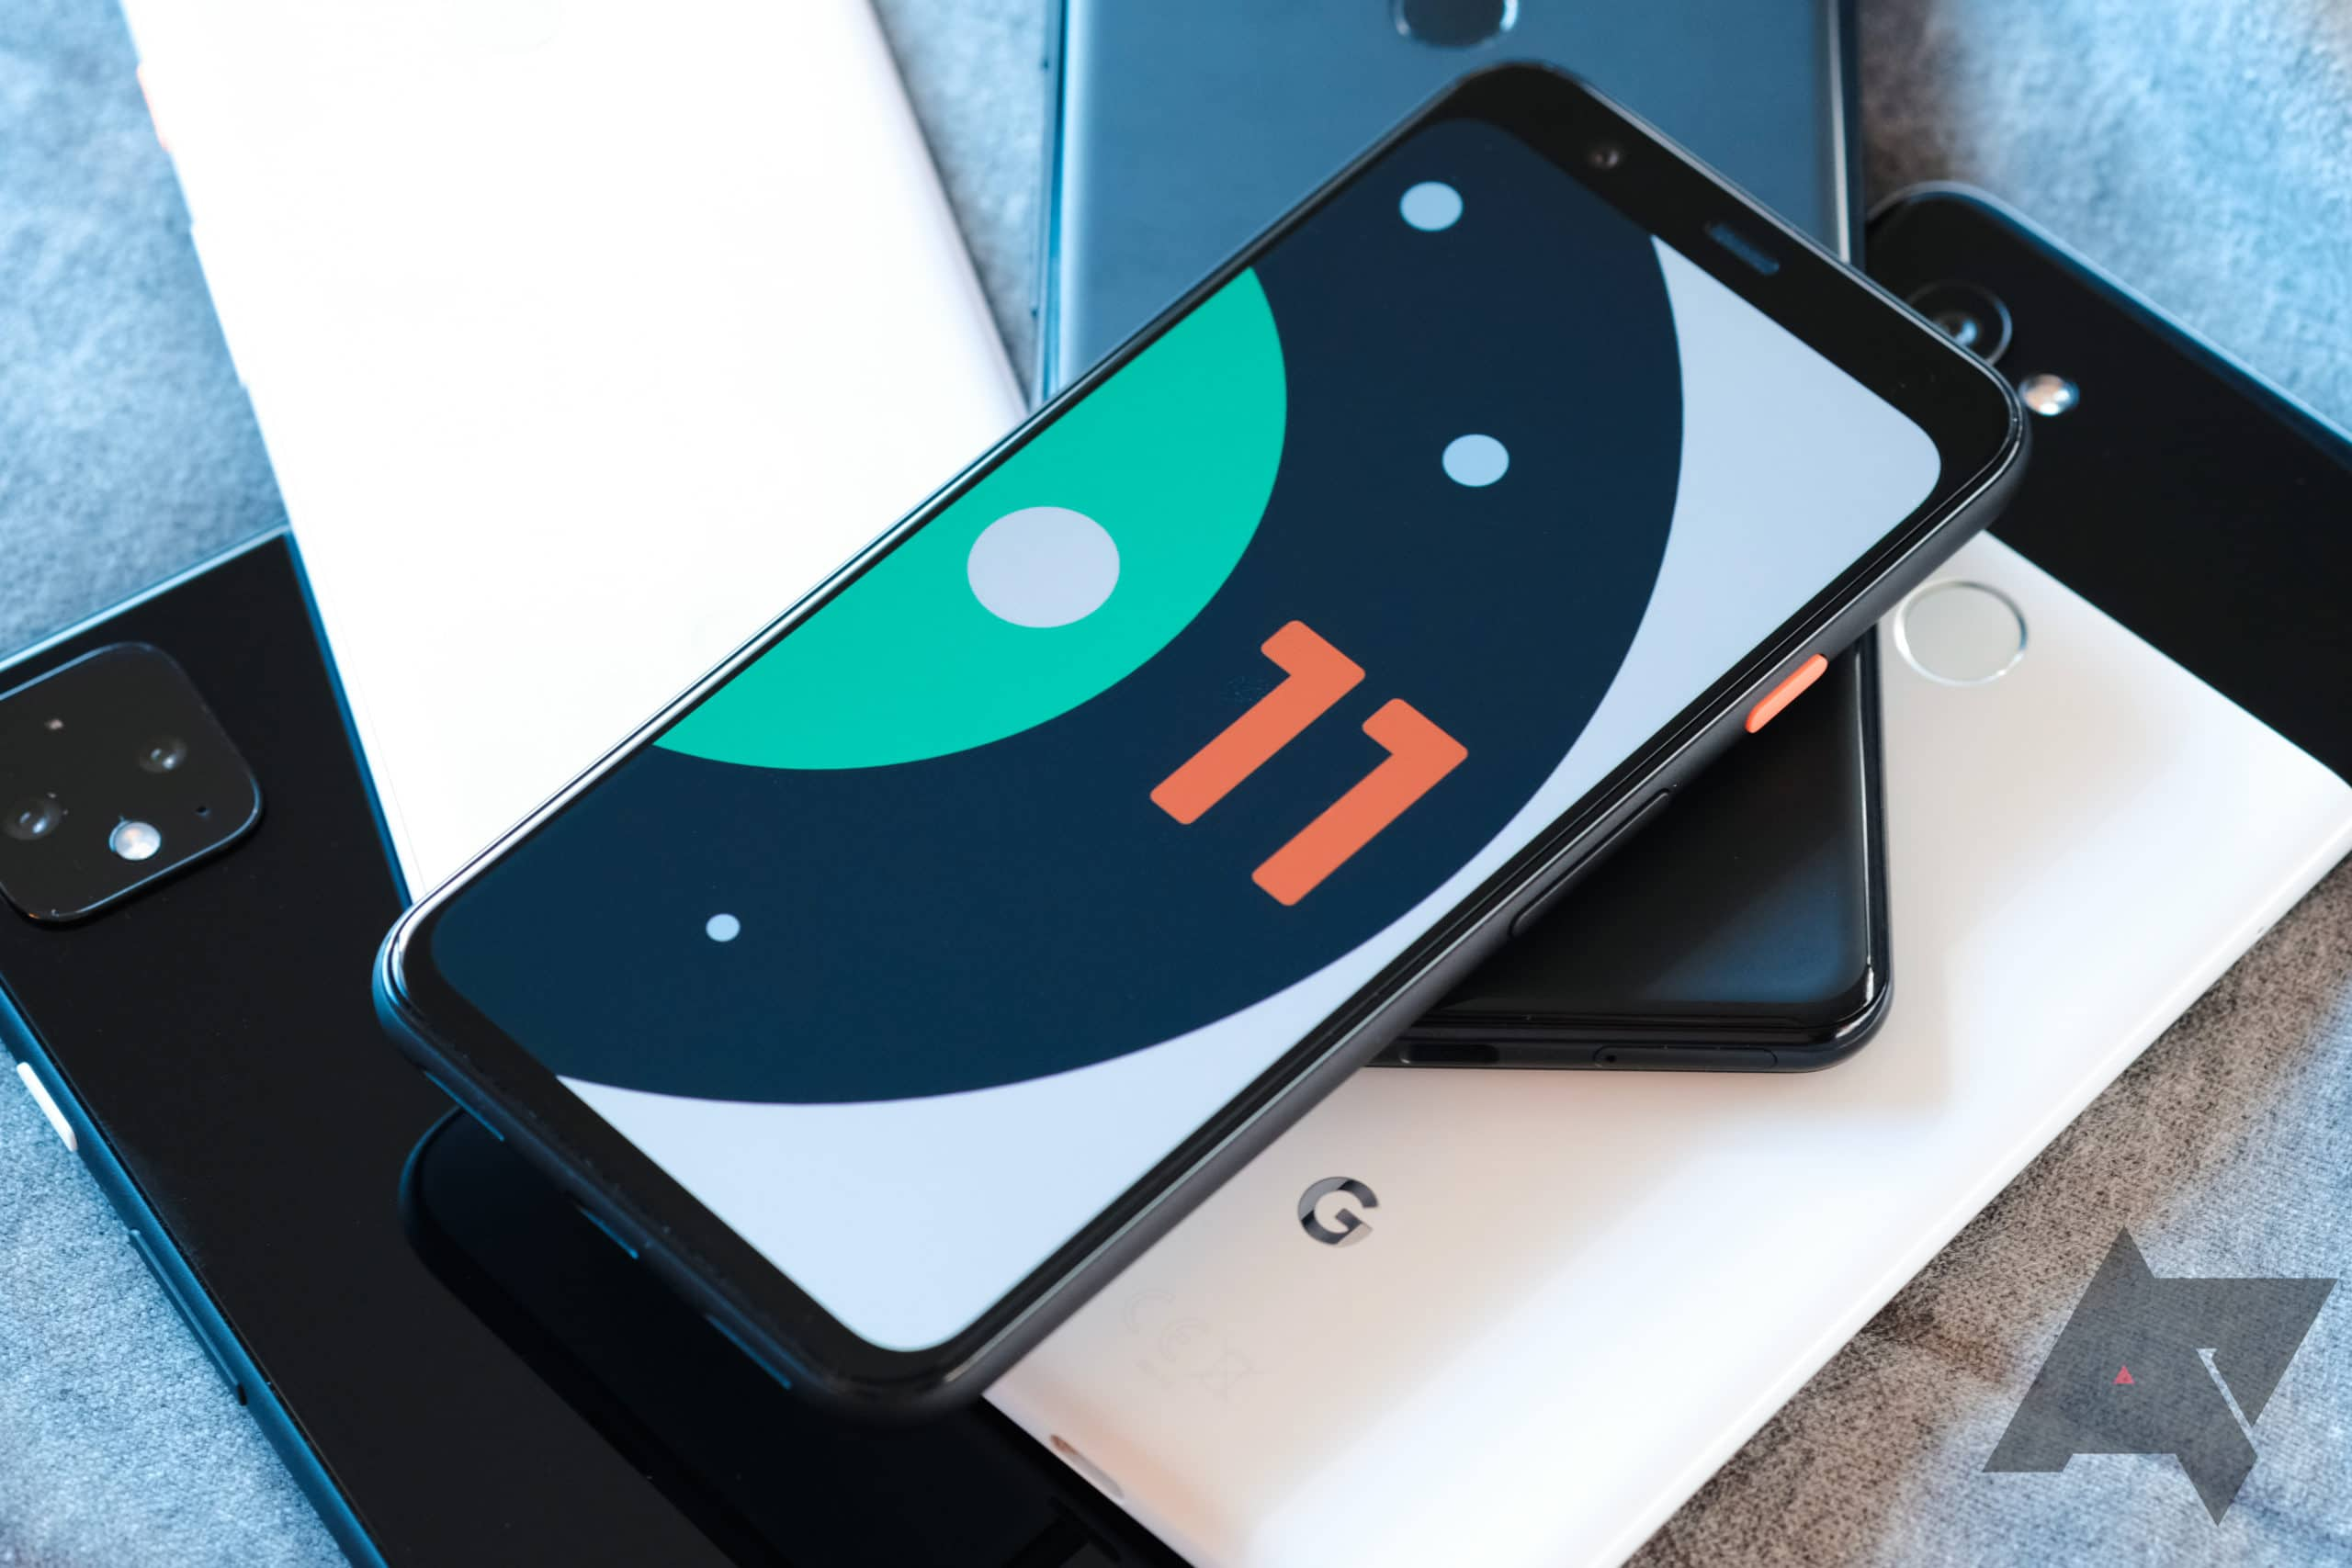 Downsides of the Android 11 Operating System